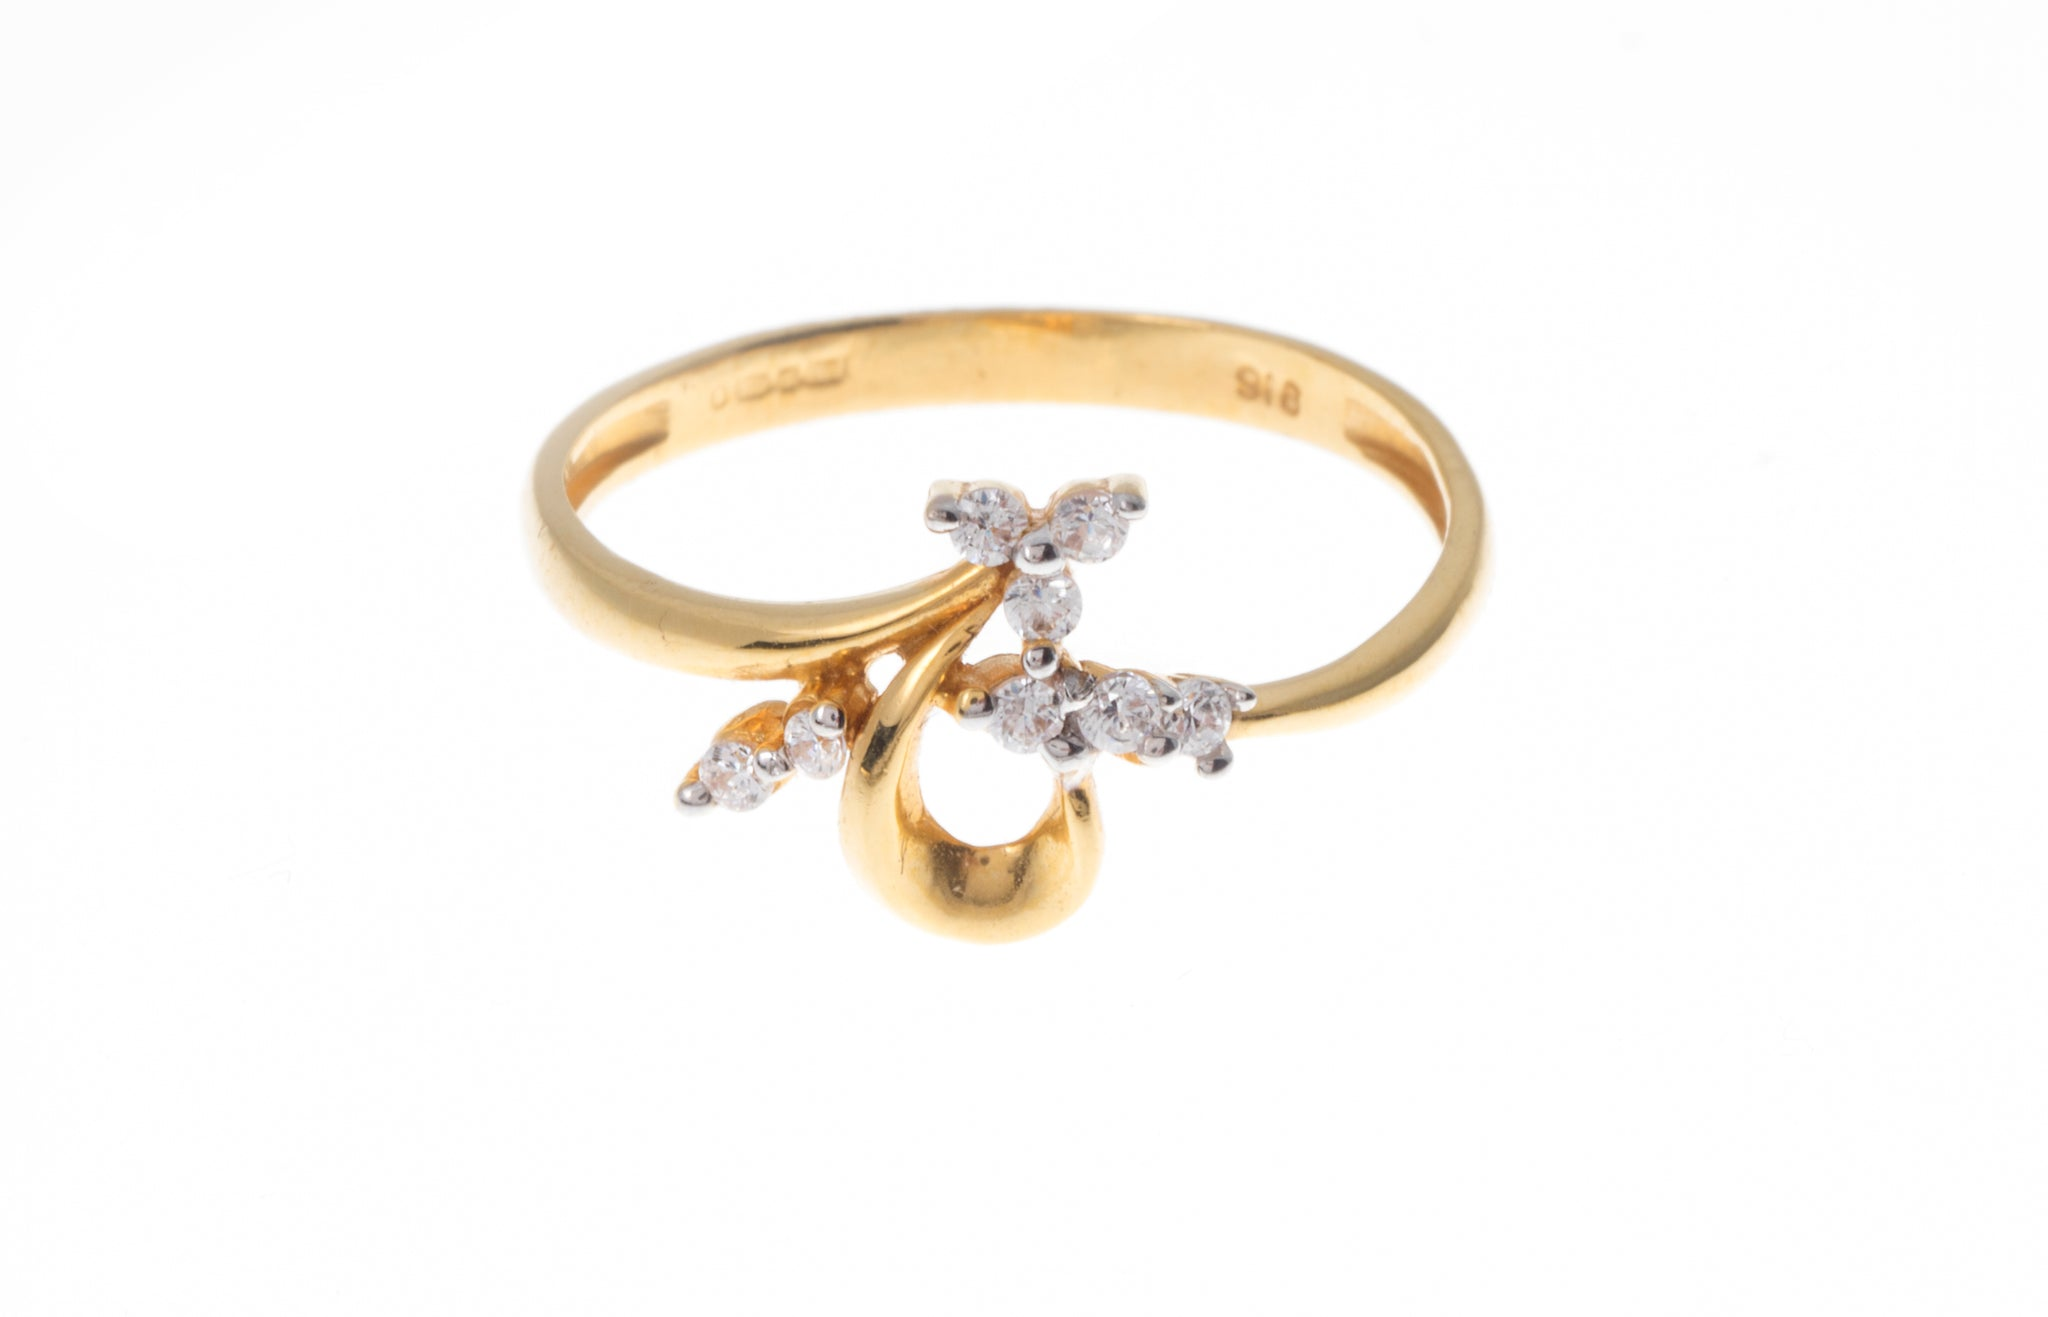 22ct Gold Cubic Zirconia Dress Ring LR15083